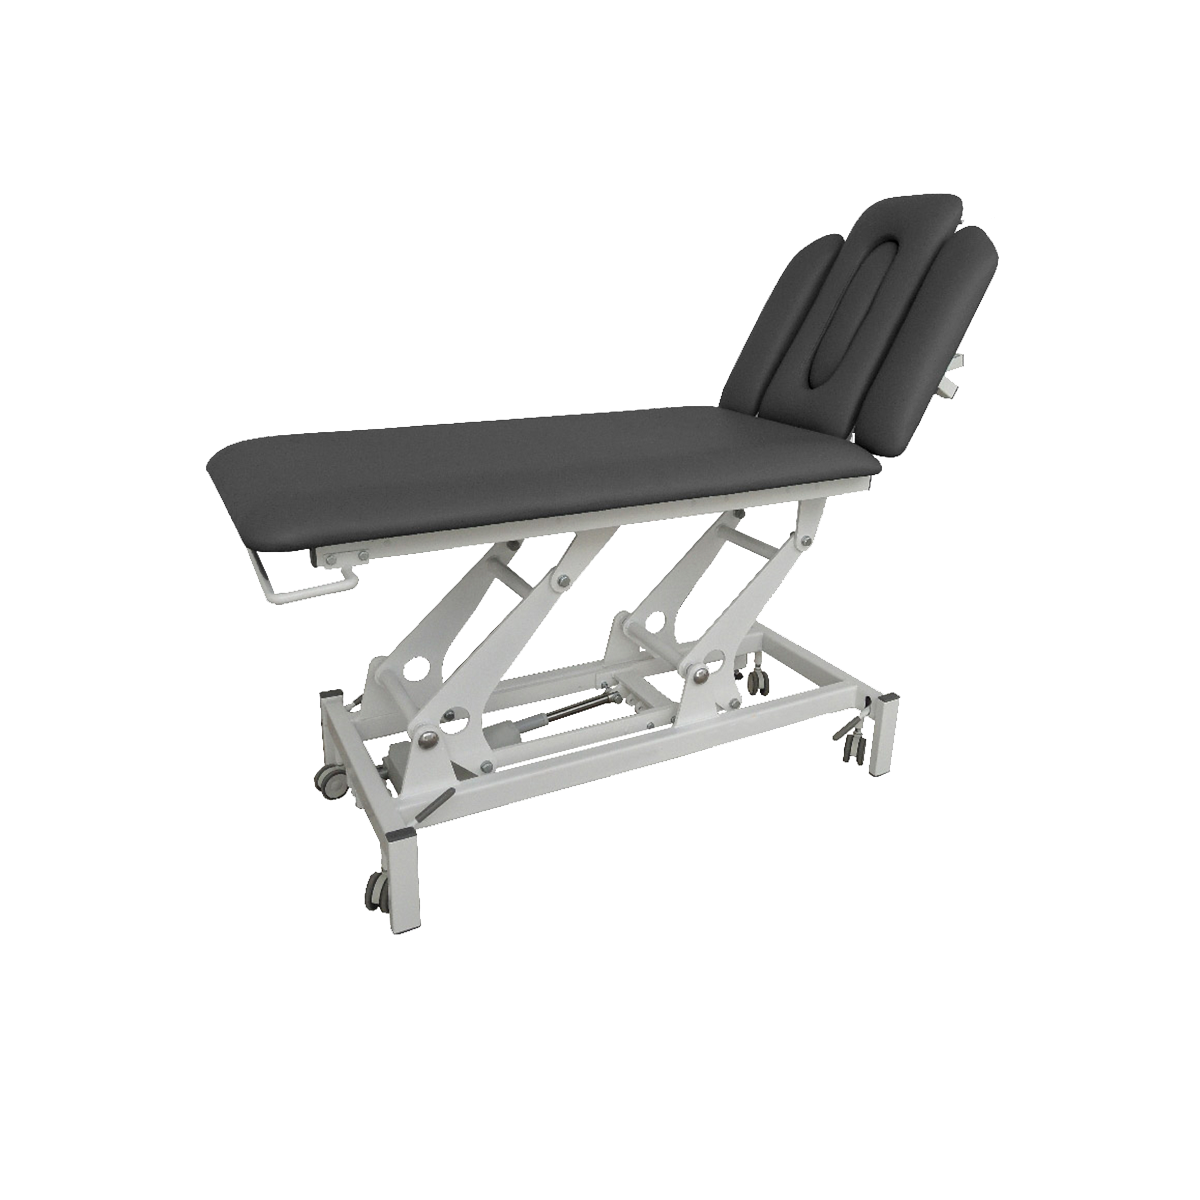 Hydraulic treatment tables physiotherapy